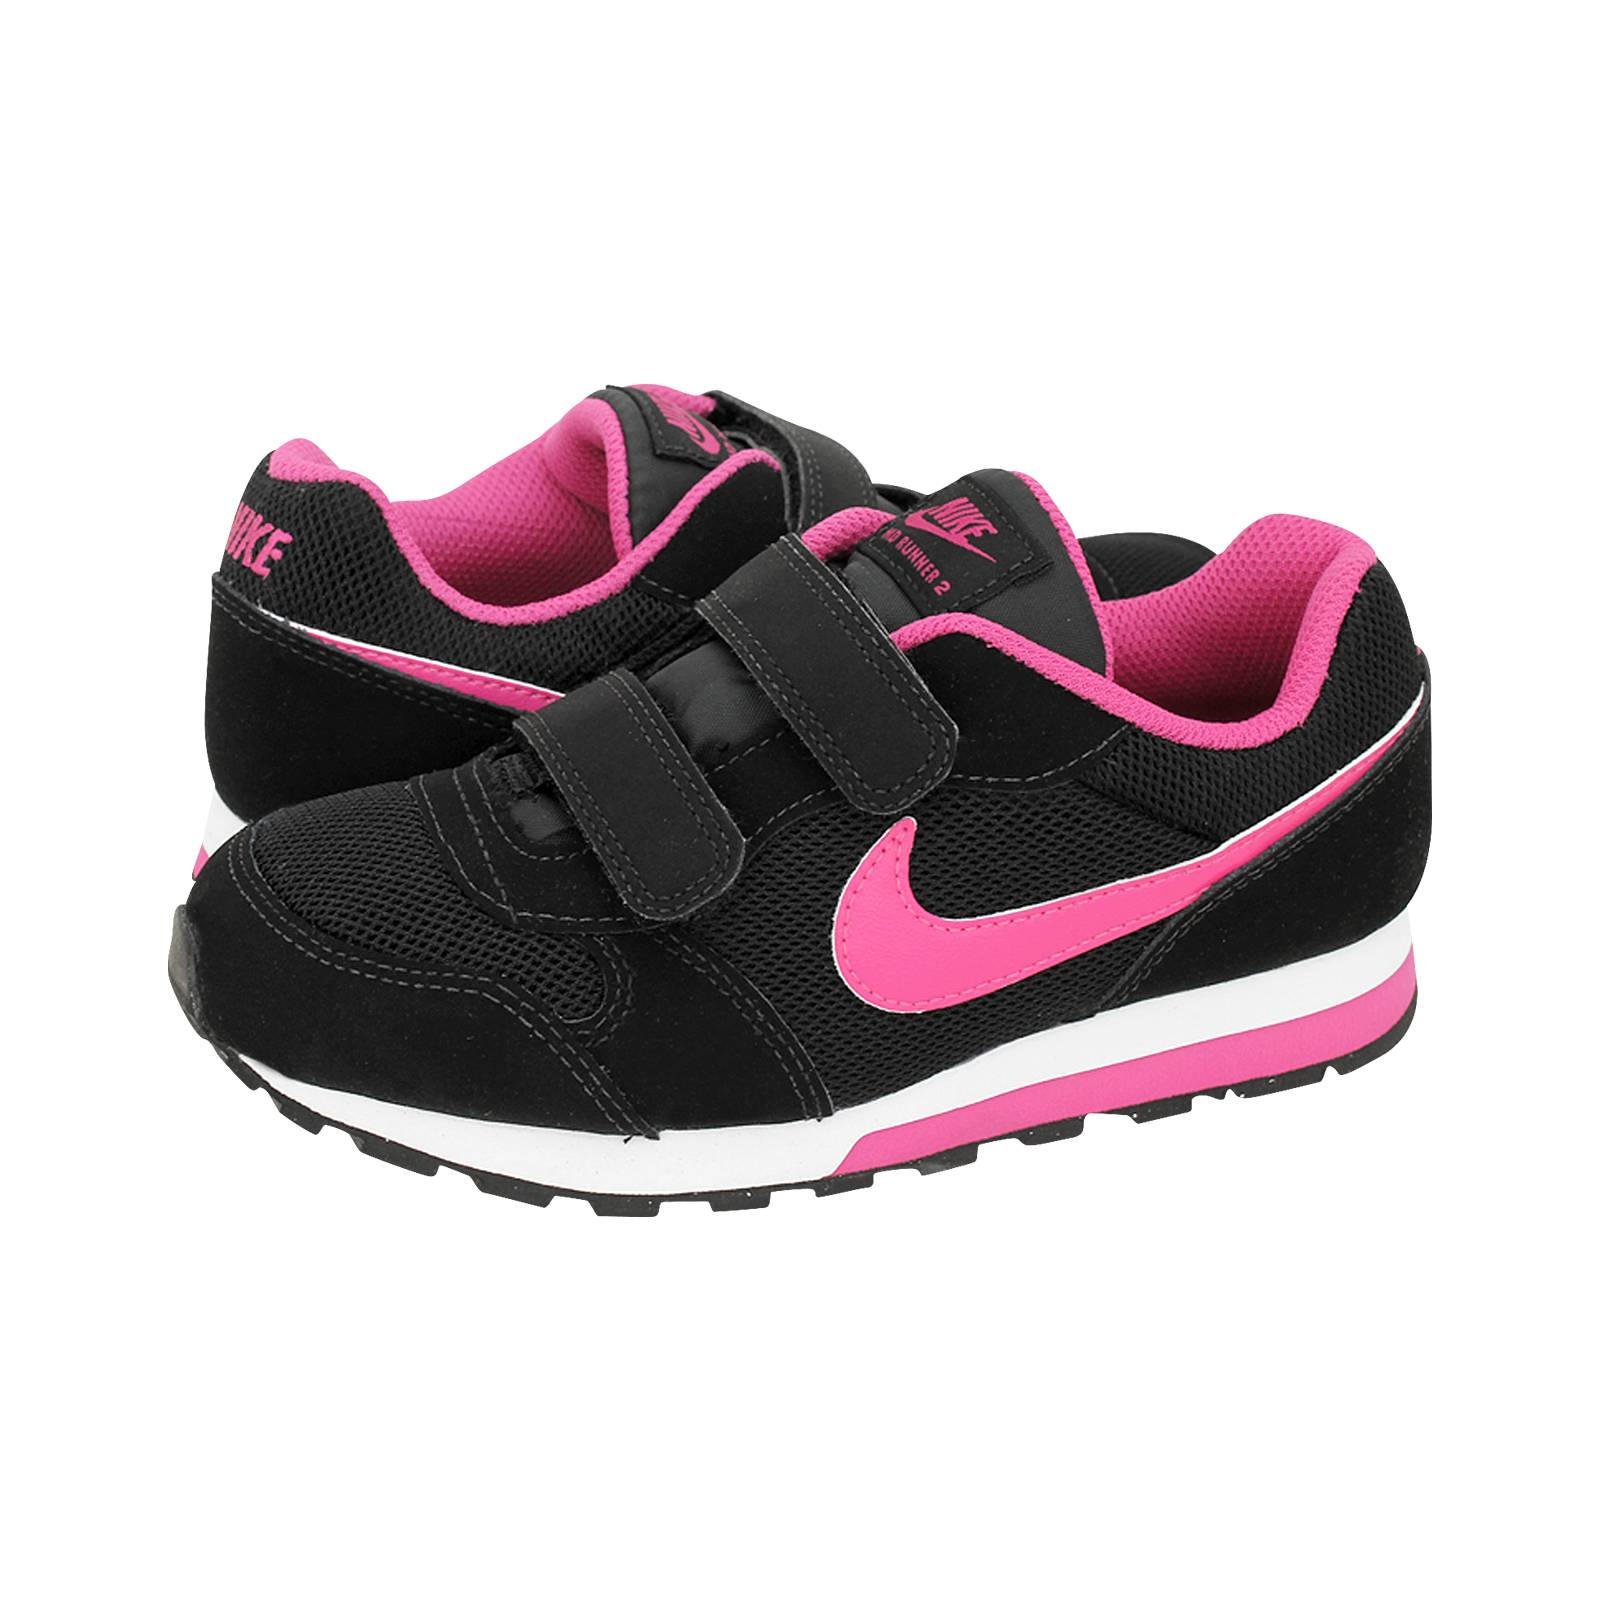 ade7a1f7270e MD Runner 2 PSV - Παιδικά αθλητικά παπούτσια Nike από nubuck, υφασμα ...